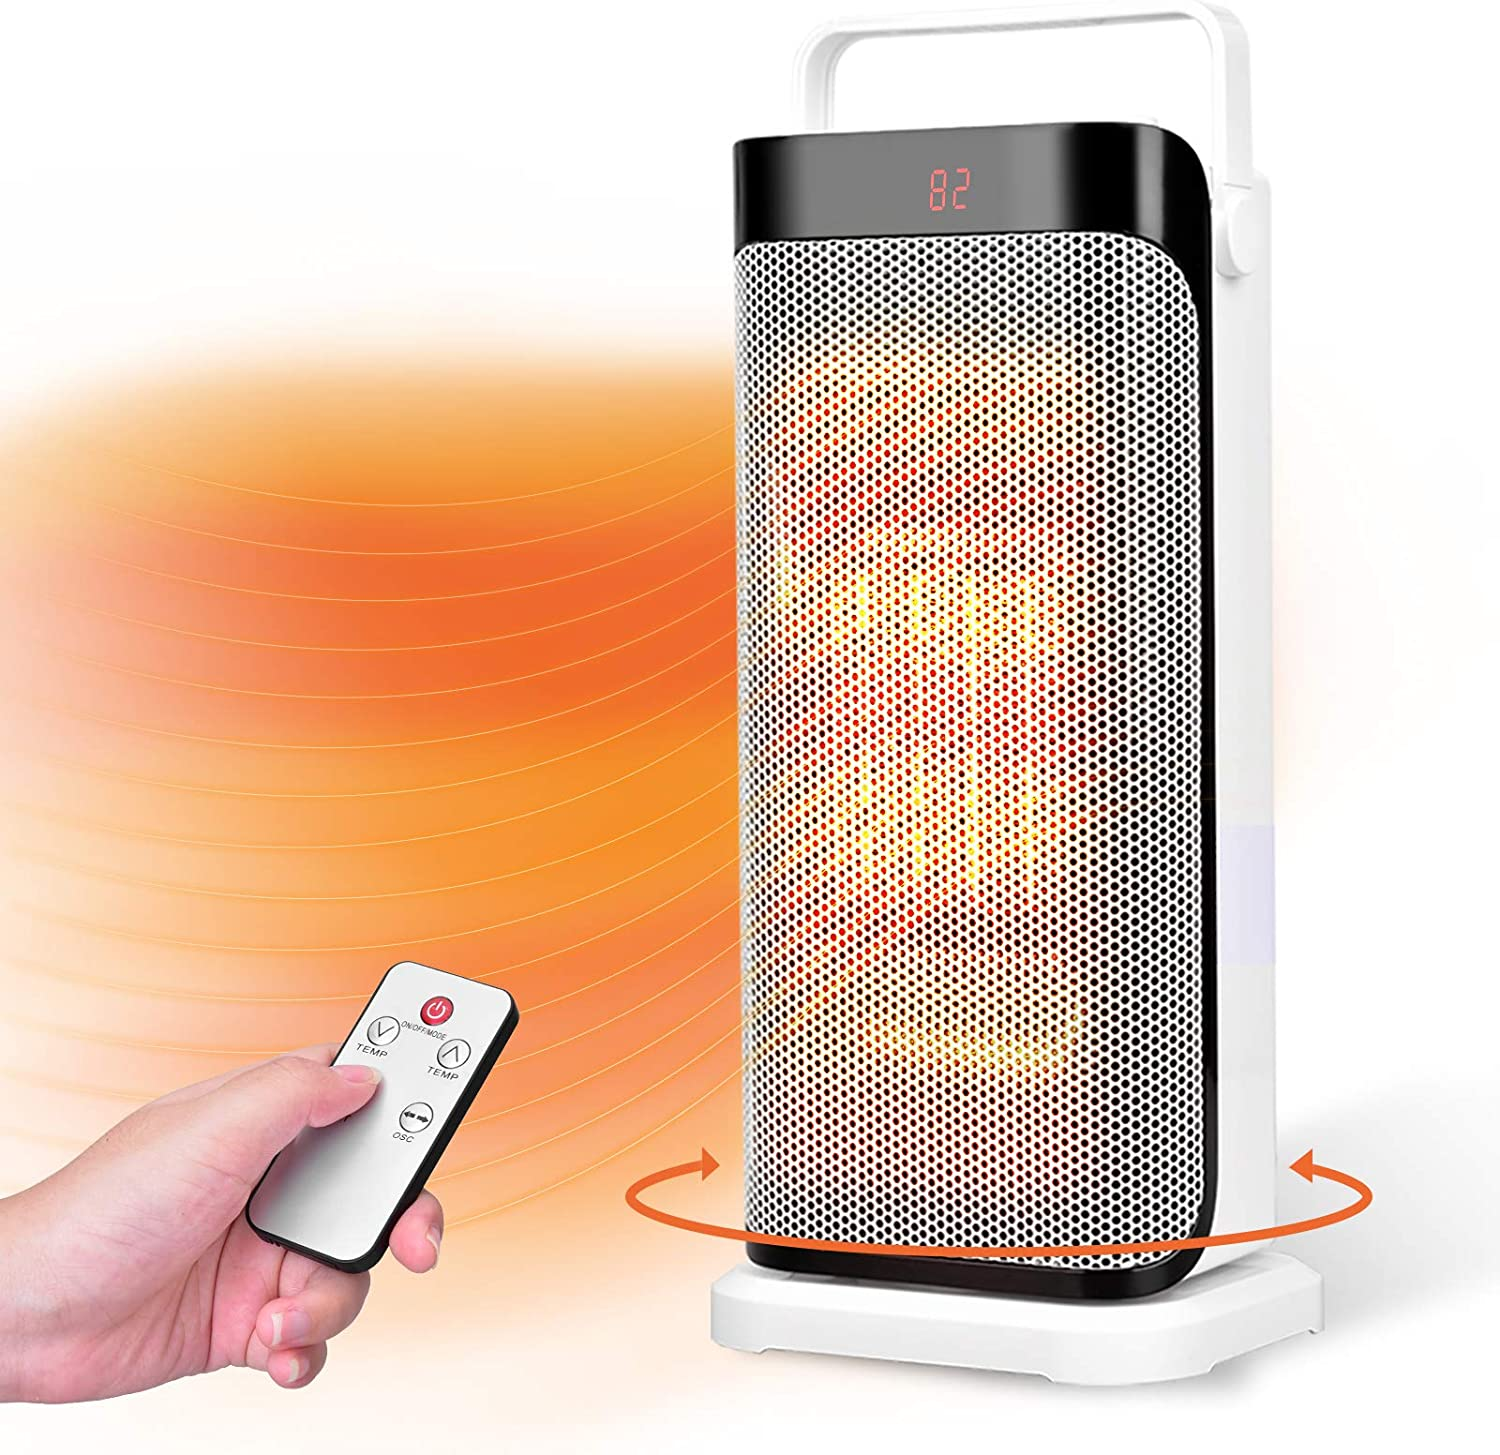 DOUHE Space Heater Portable Electric Ceramic Heaters for Office 950W Oscillating Floor Heater with Digital Thermostat,Tip-over/&Overheating Protection for Home Quiet Personal Heaters Under Desk